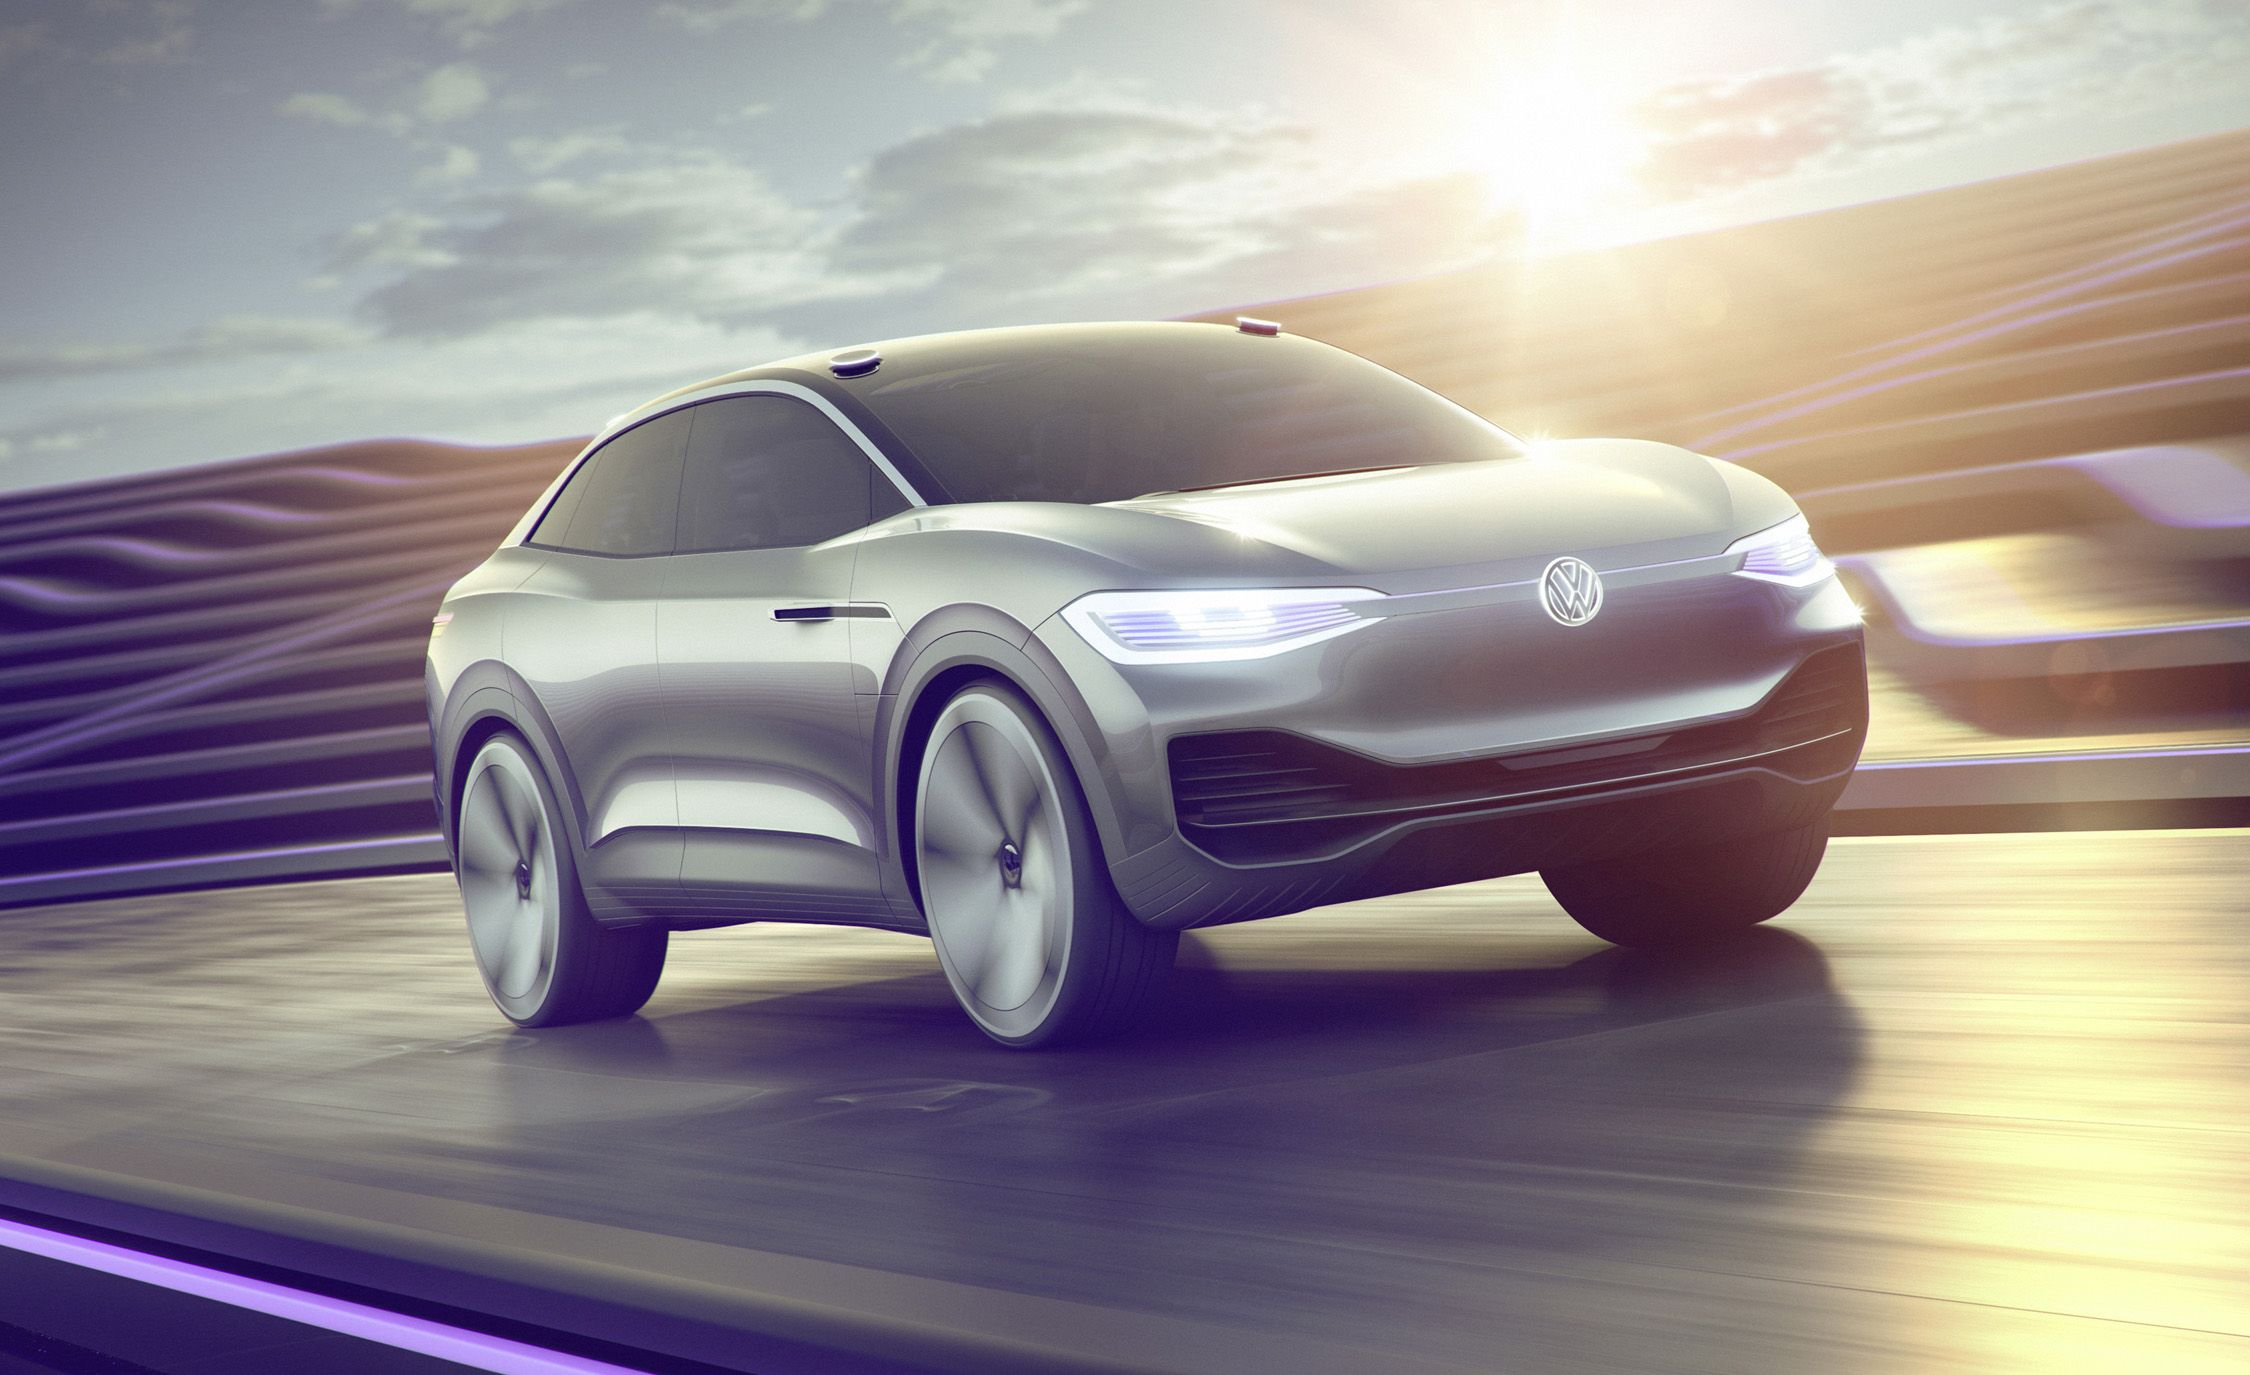 Volkswagen I.D. Crozz Concept: The EV Crossover That Can Wink